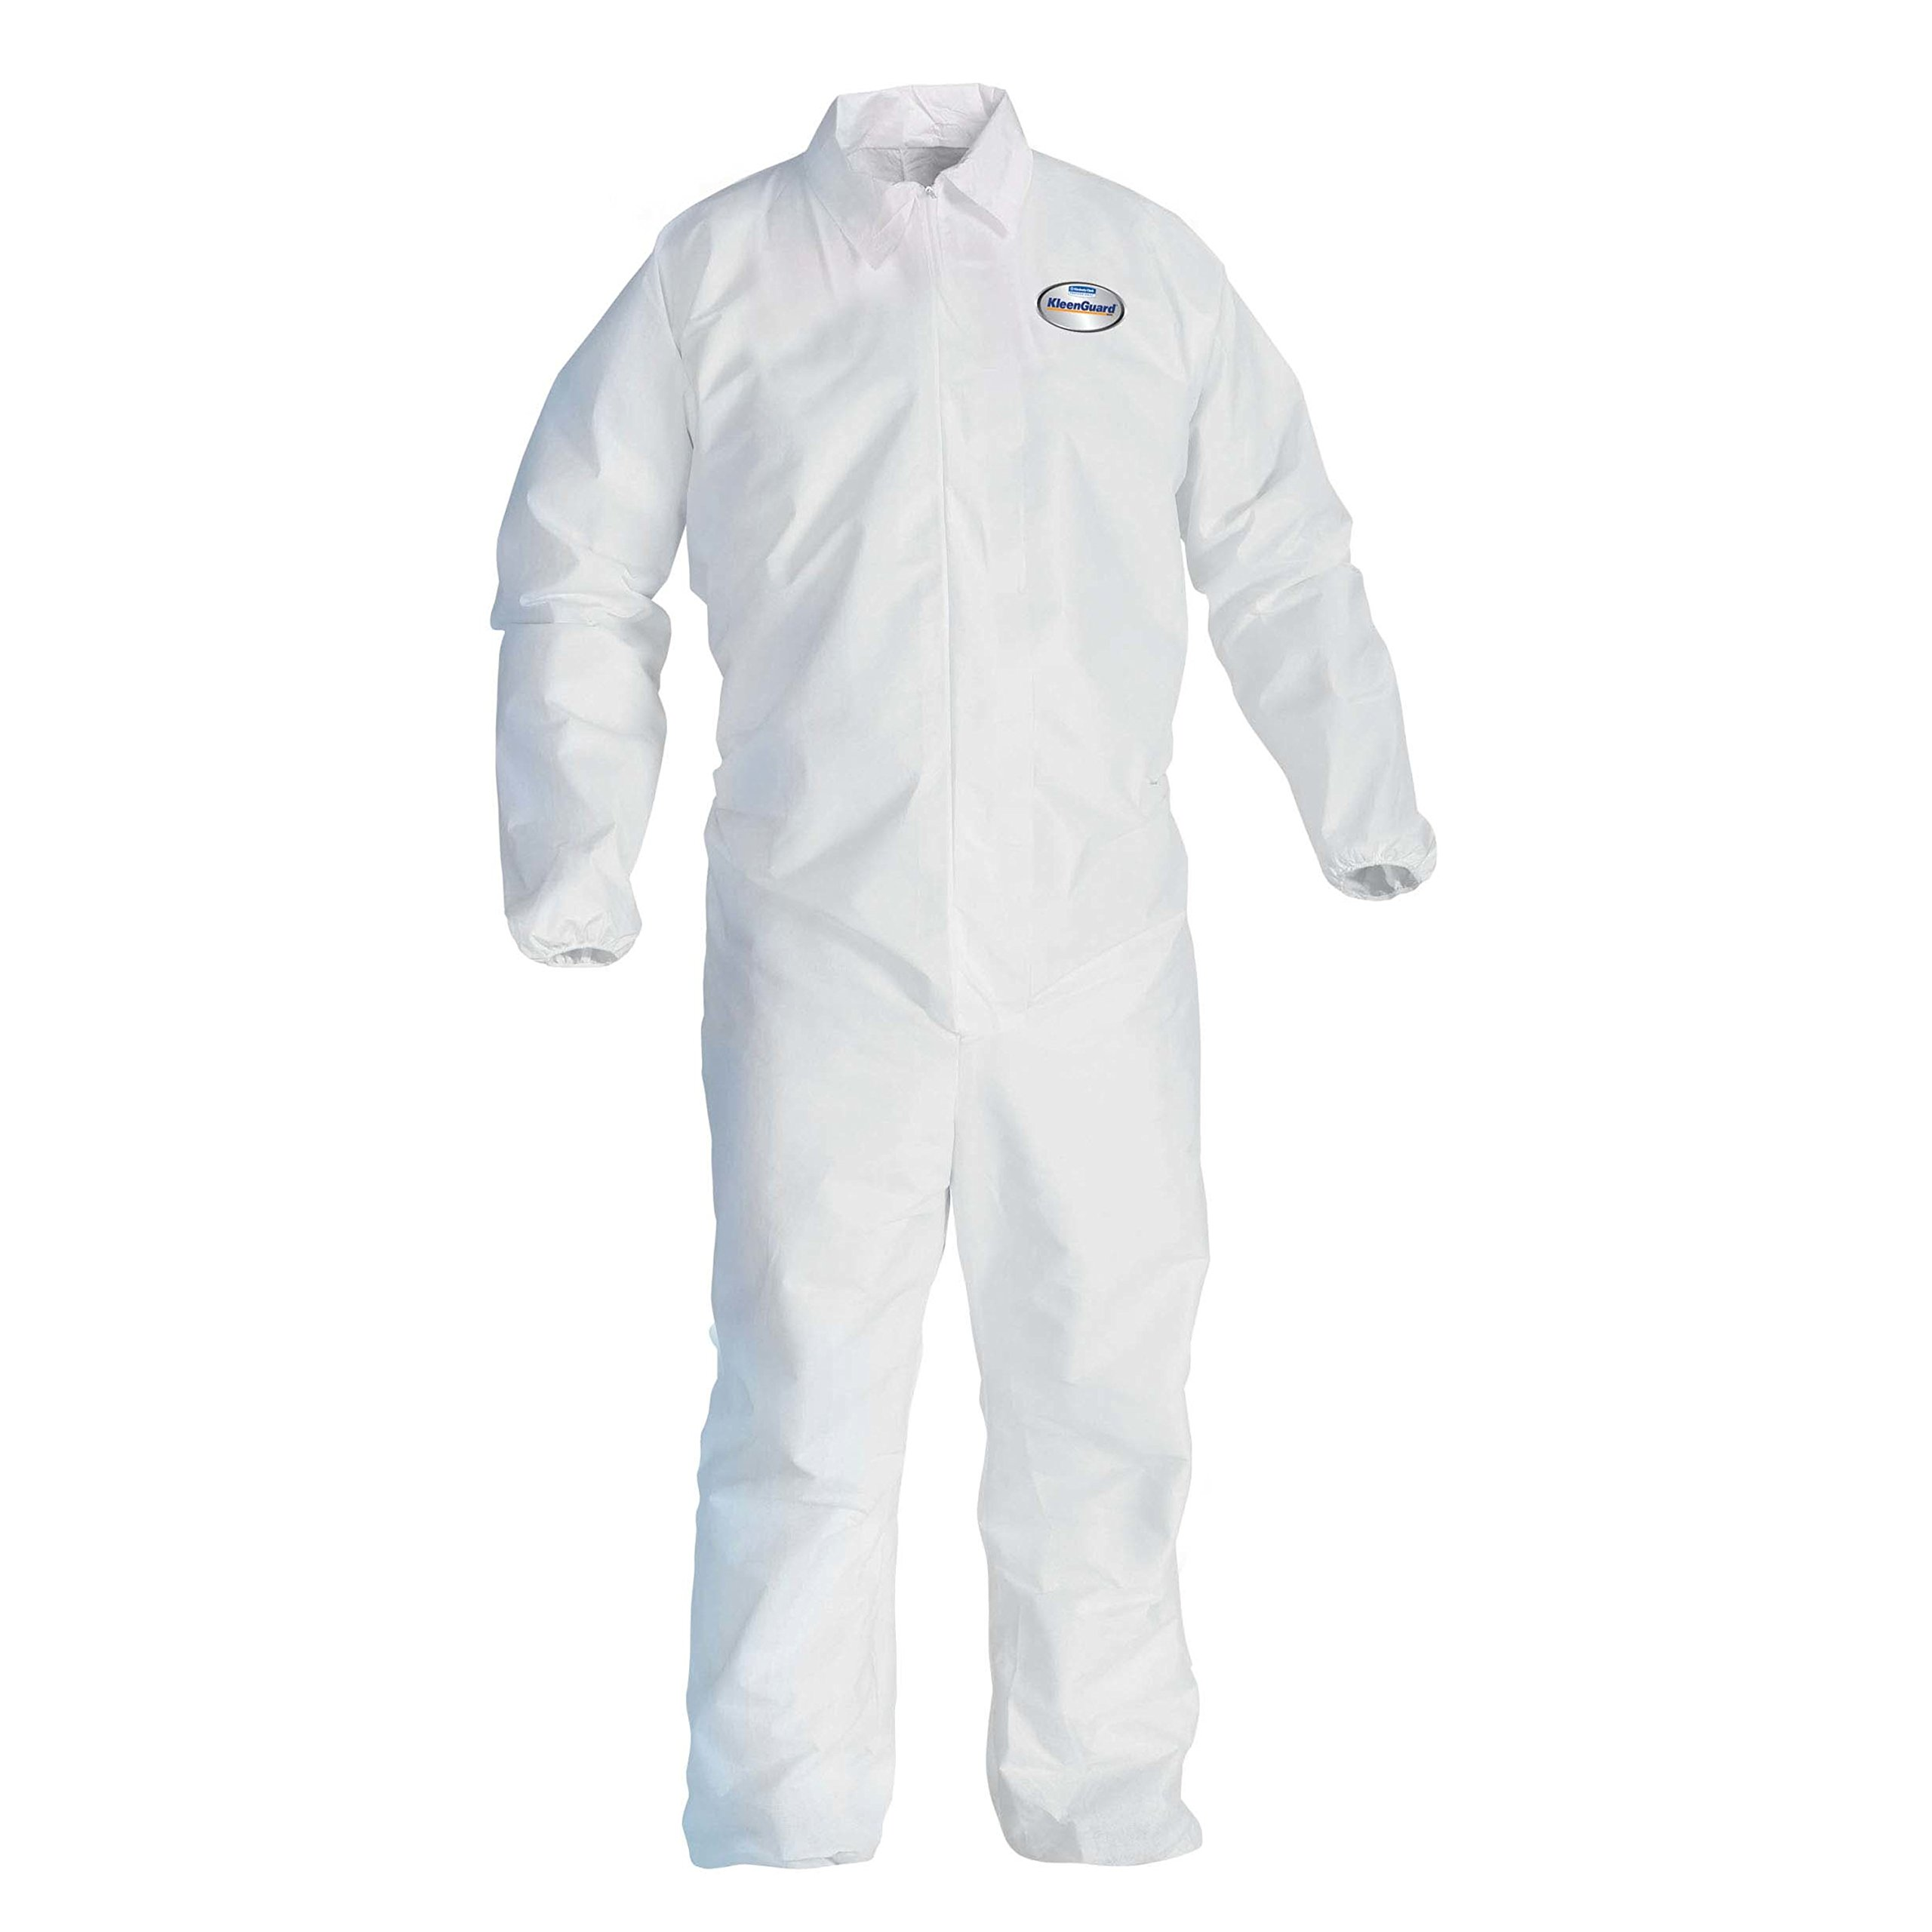 Kleenguard A20 Breathable Particle Protection Coveralls